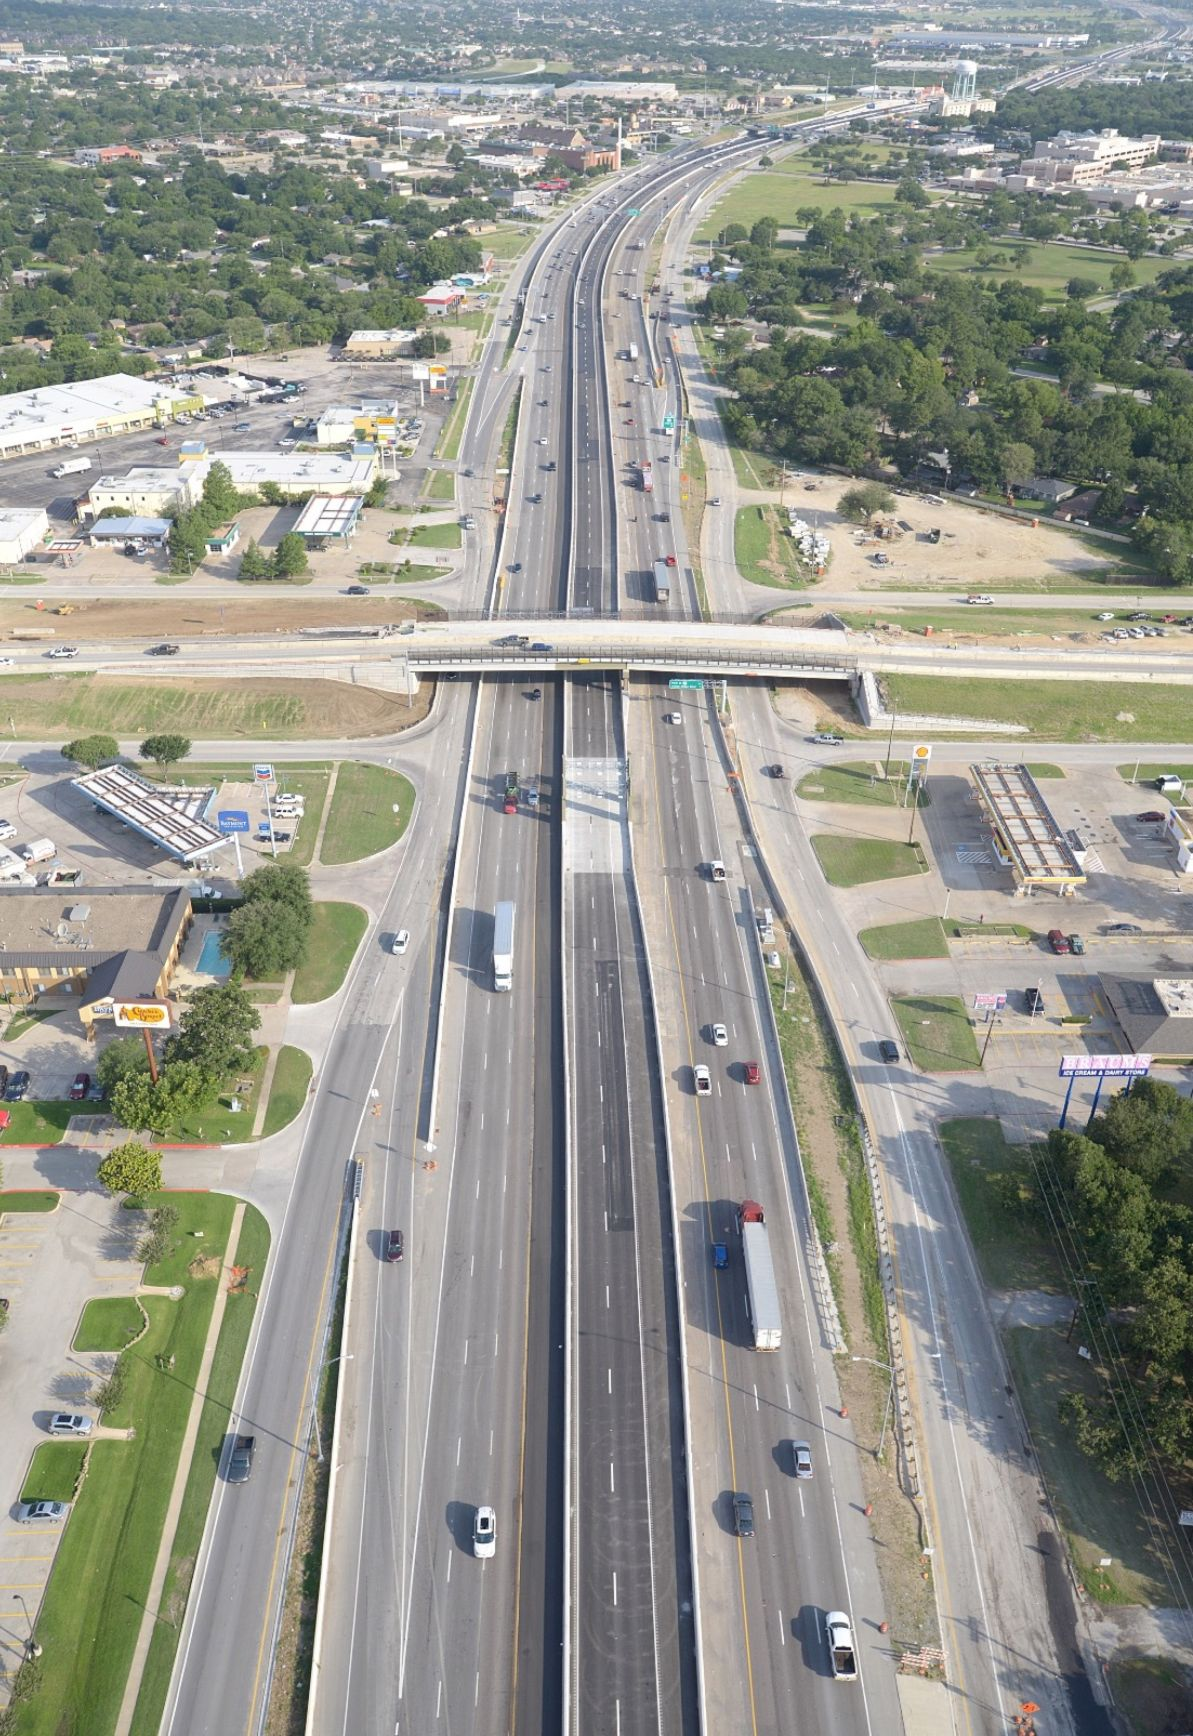 Public hearing seeks input on truck restrictions, including portion of I-35E